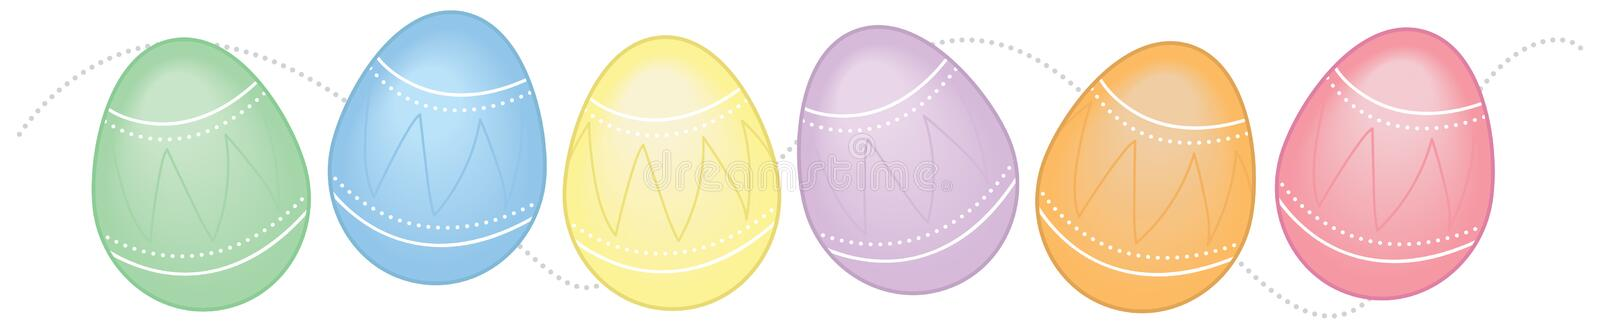 Download Horizontal Easter Egg Border Stock Vector - Image: 8432719